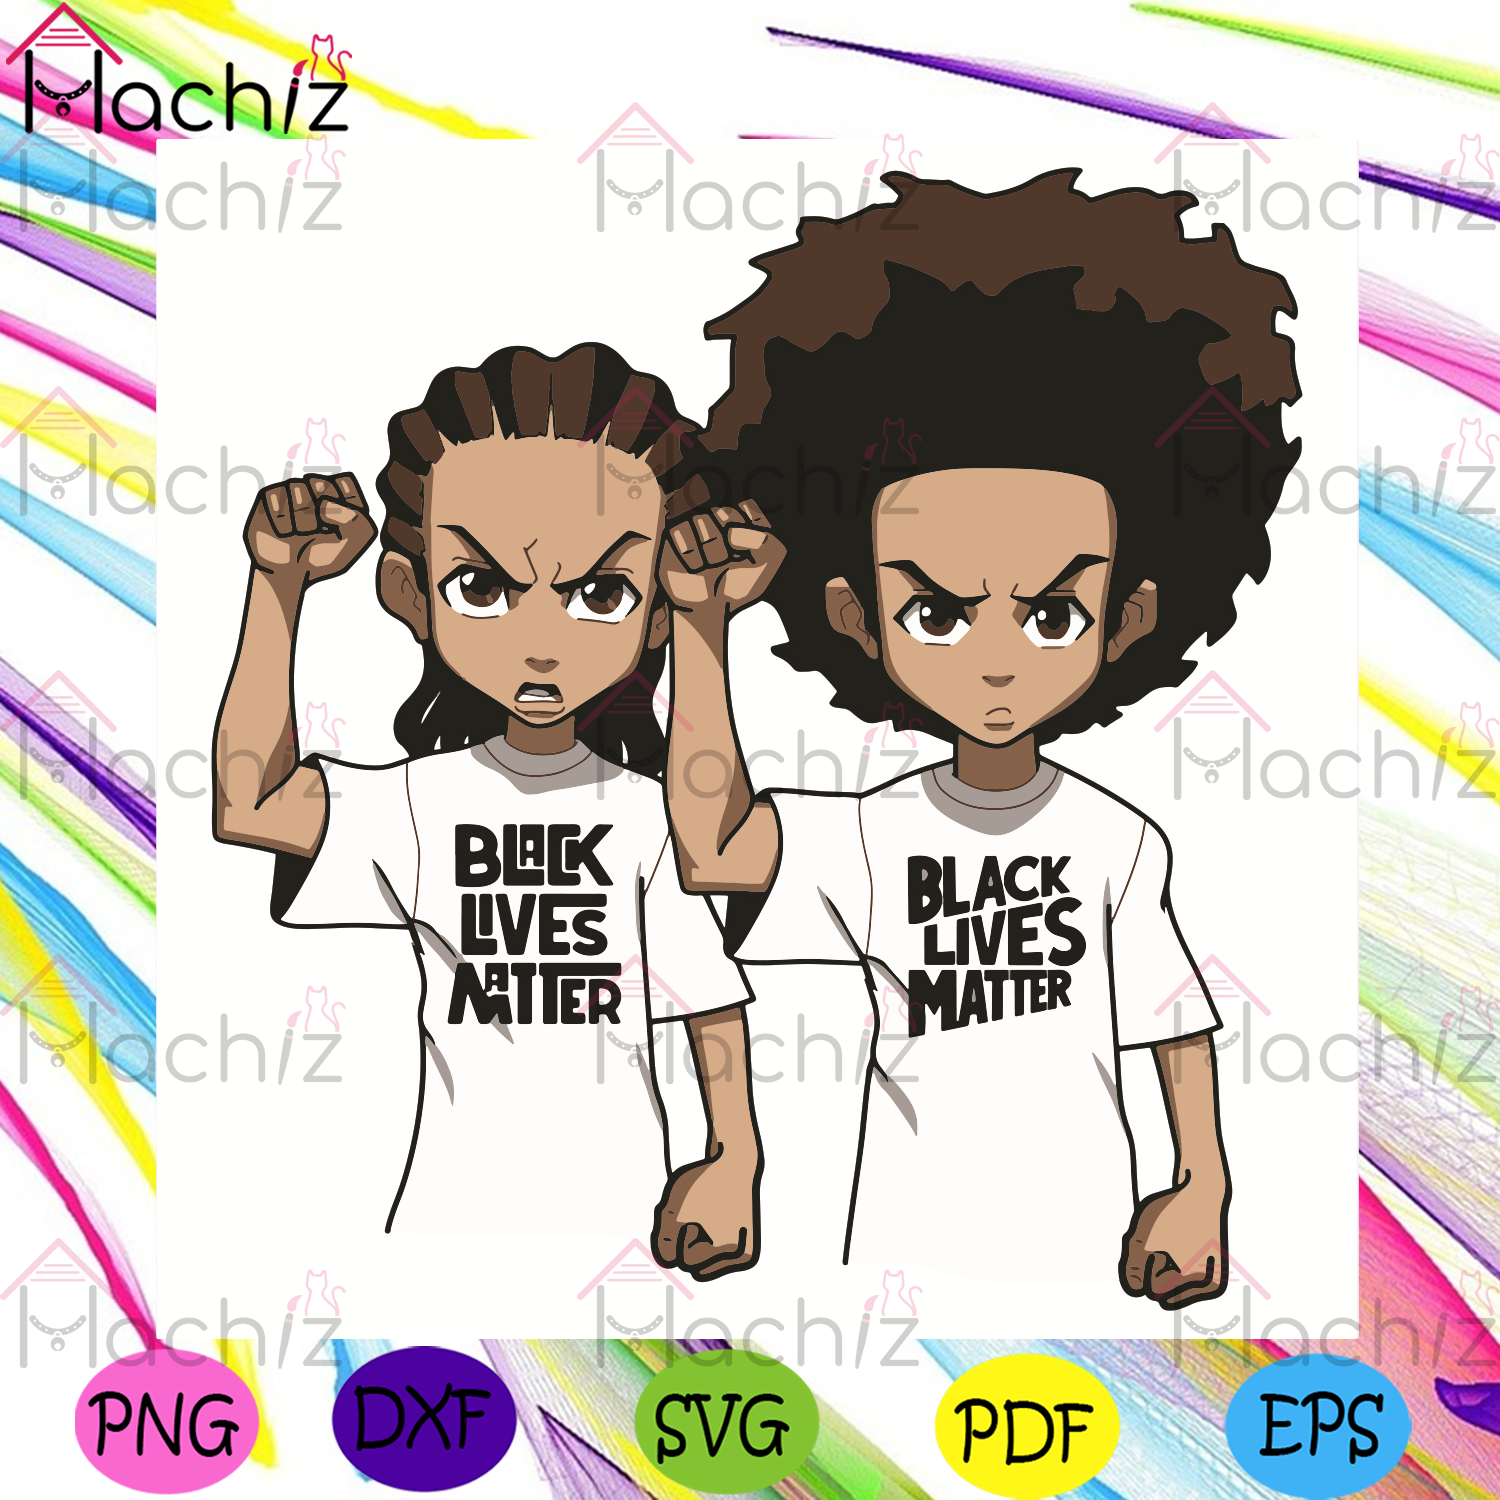 Black Lives Matter Svg, Trending Svg, Riley & Huey Svg, Black People Svg, Freedom Svg, Riley & Huey Lovers Svg, Freeman Svg, Riley & Huey Gifts Svg, Black Free Svg, Real Independence Svg, Peace Svg, Black Girls Svg, Black Man Svg